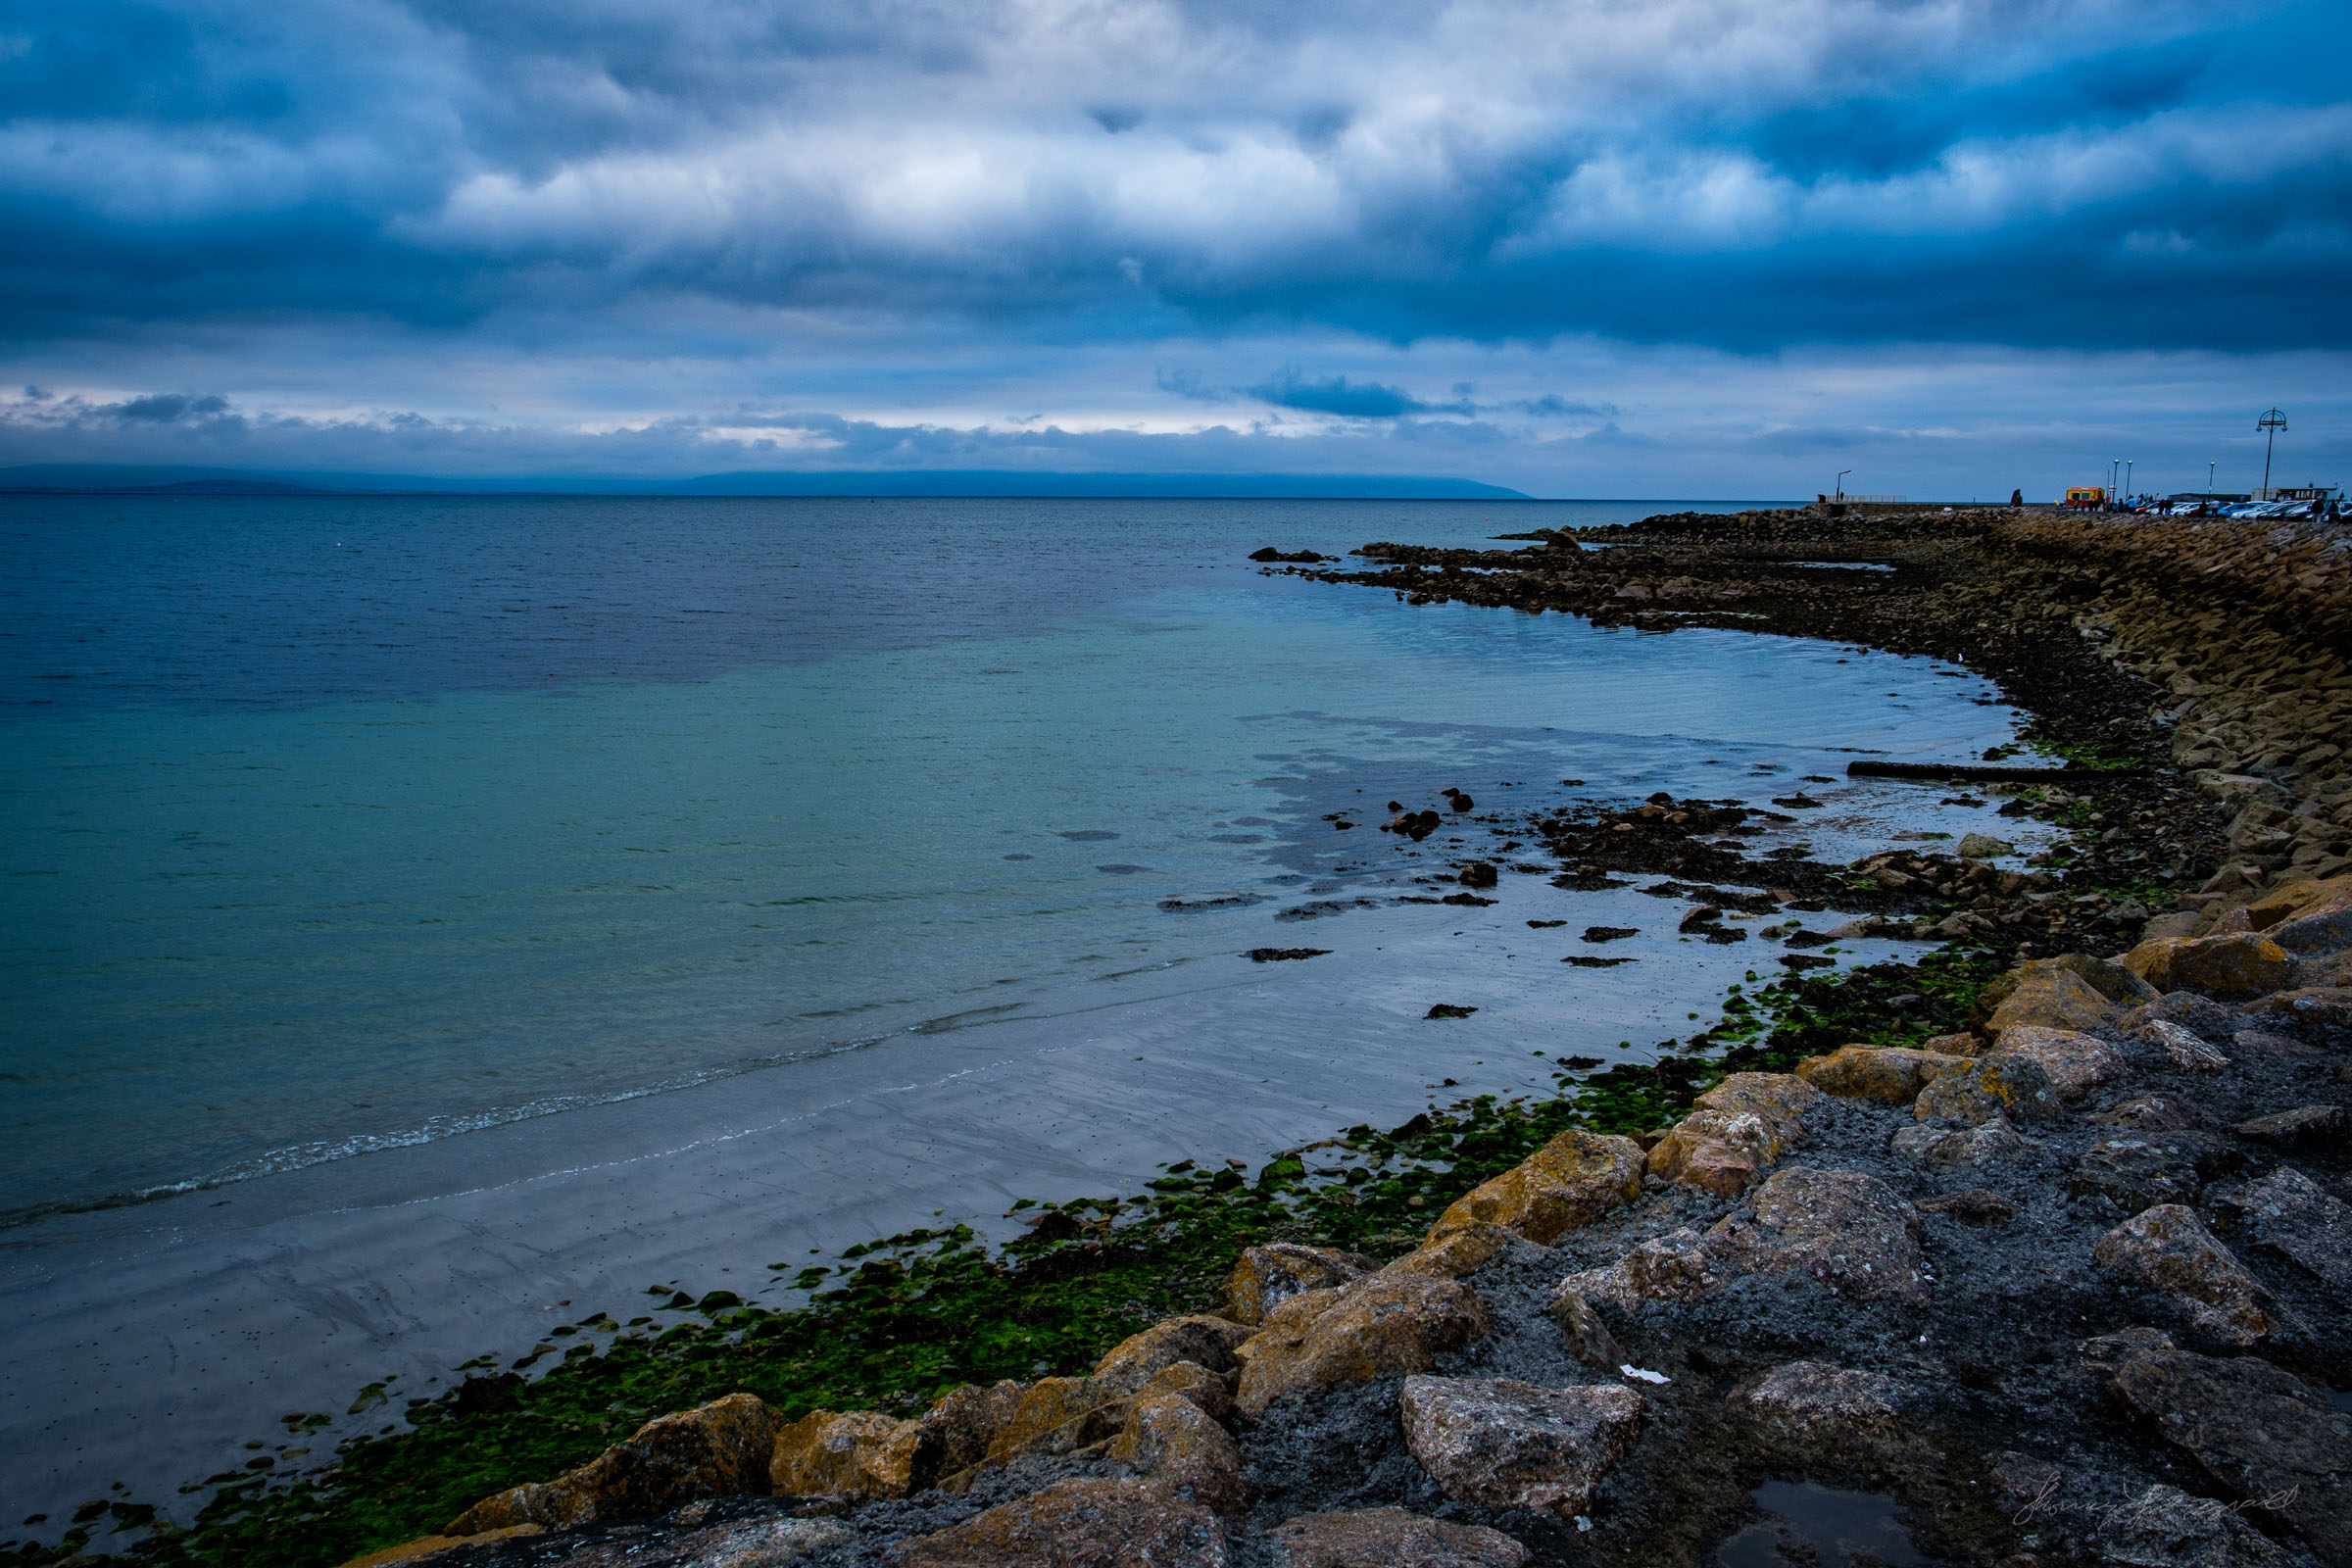 Sunset over the beach at Salthill in Galway